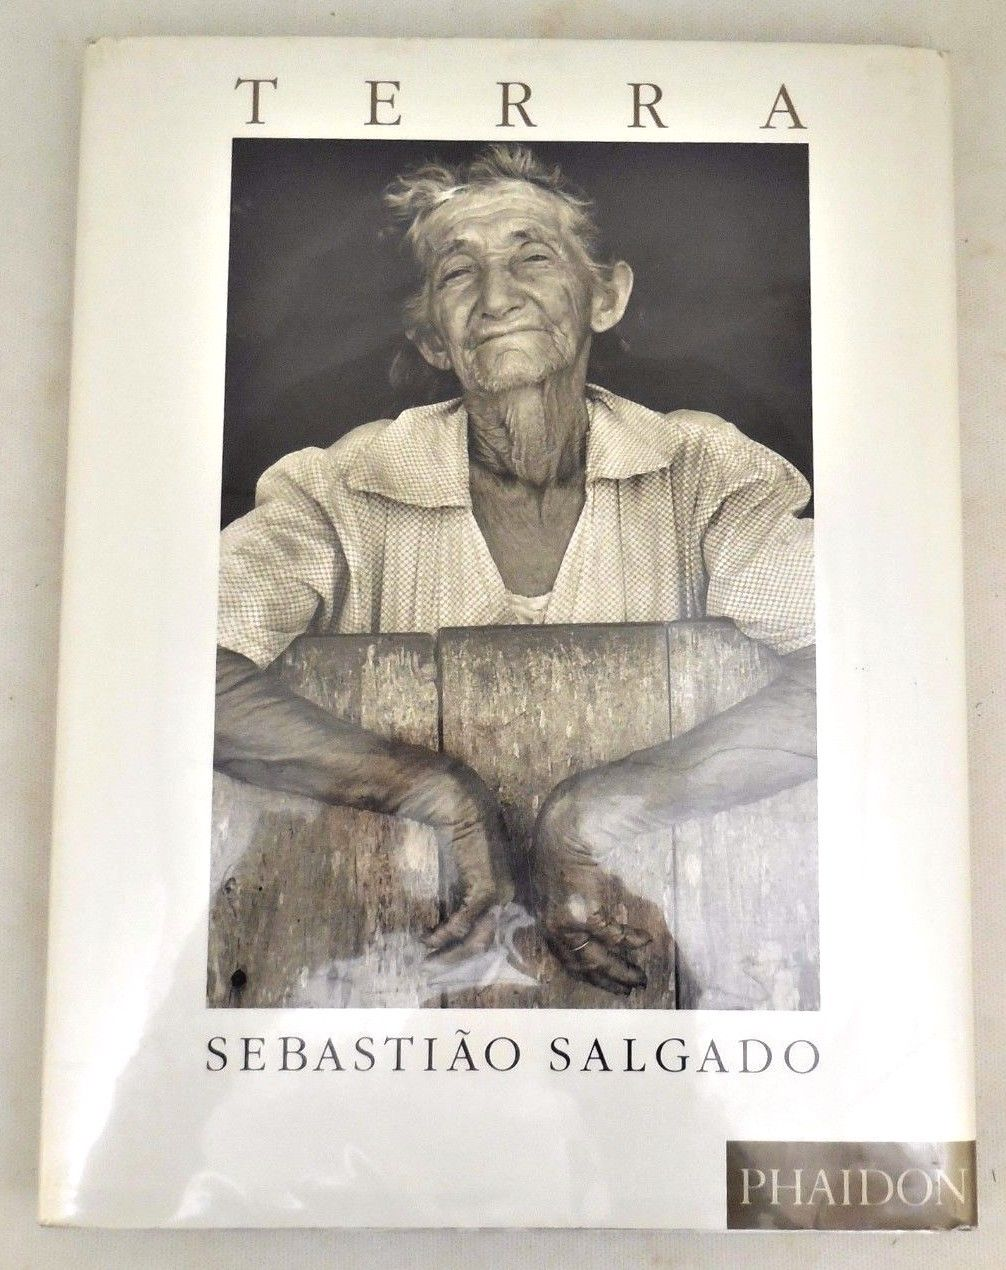 TERRA: STRUGGLE OF THE LANDLESS Sebastiao Salgado 1997 Signed 1st Ed photography